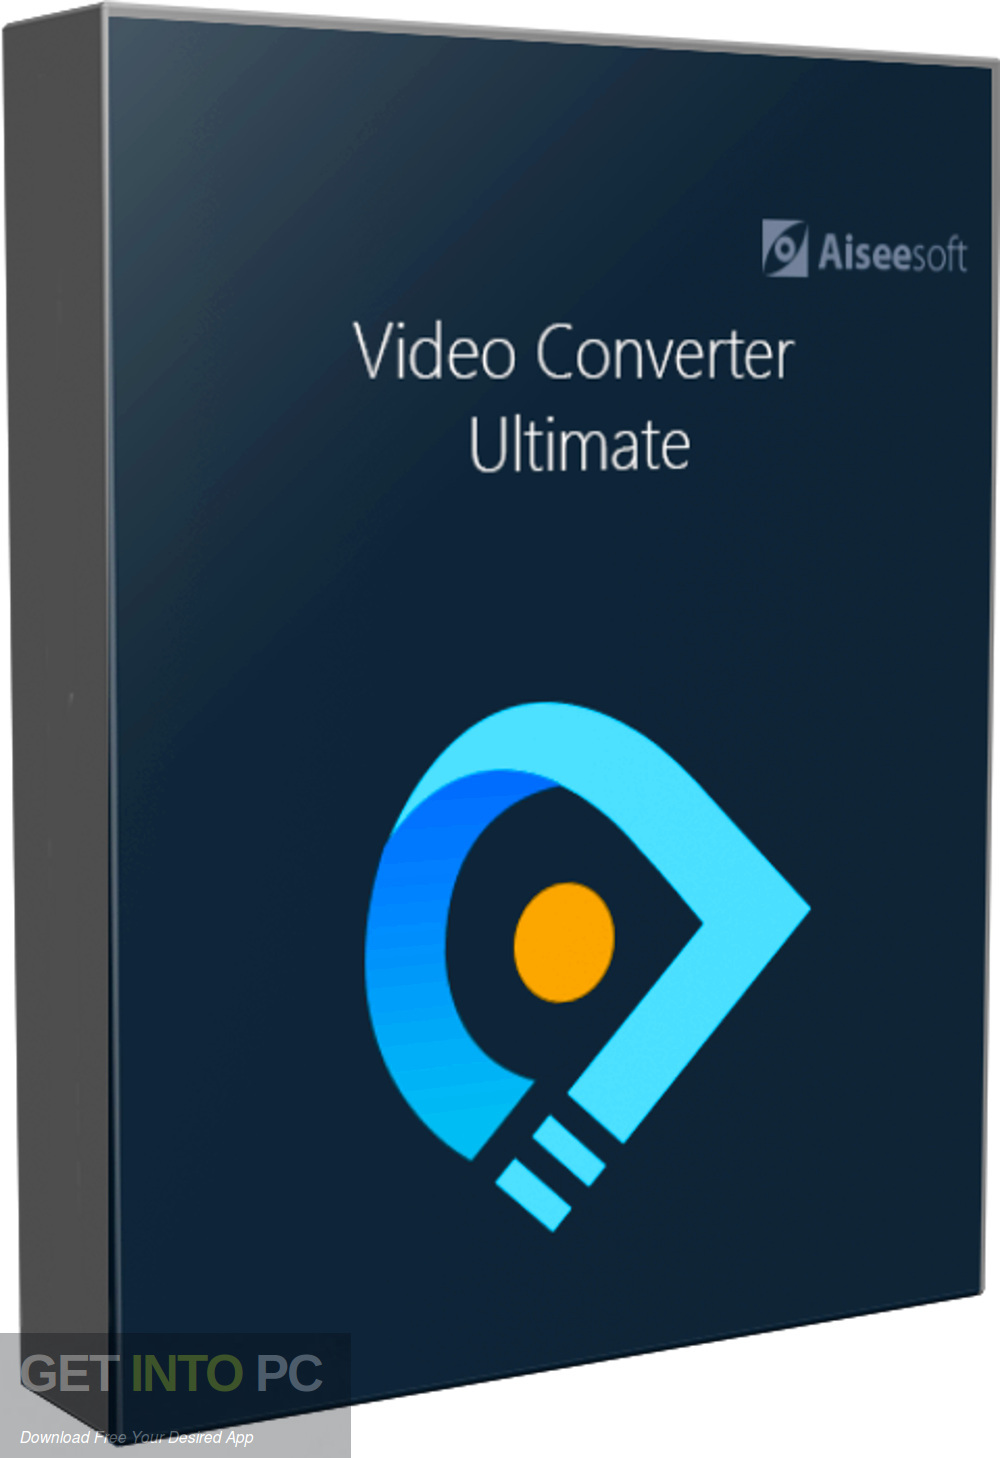 Aiseesoft Video Converter Ultimate Free Download-GetintoPC.com